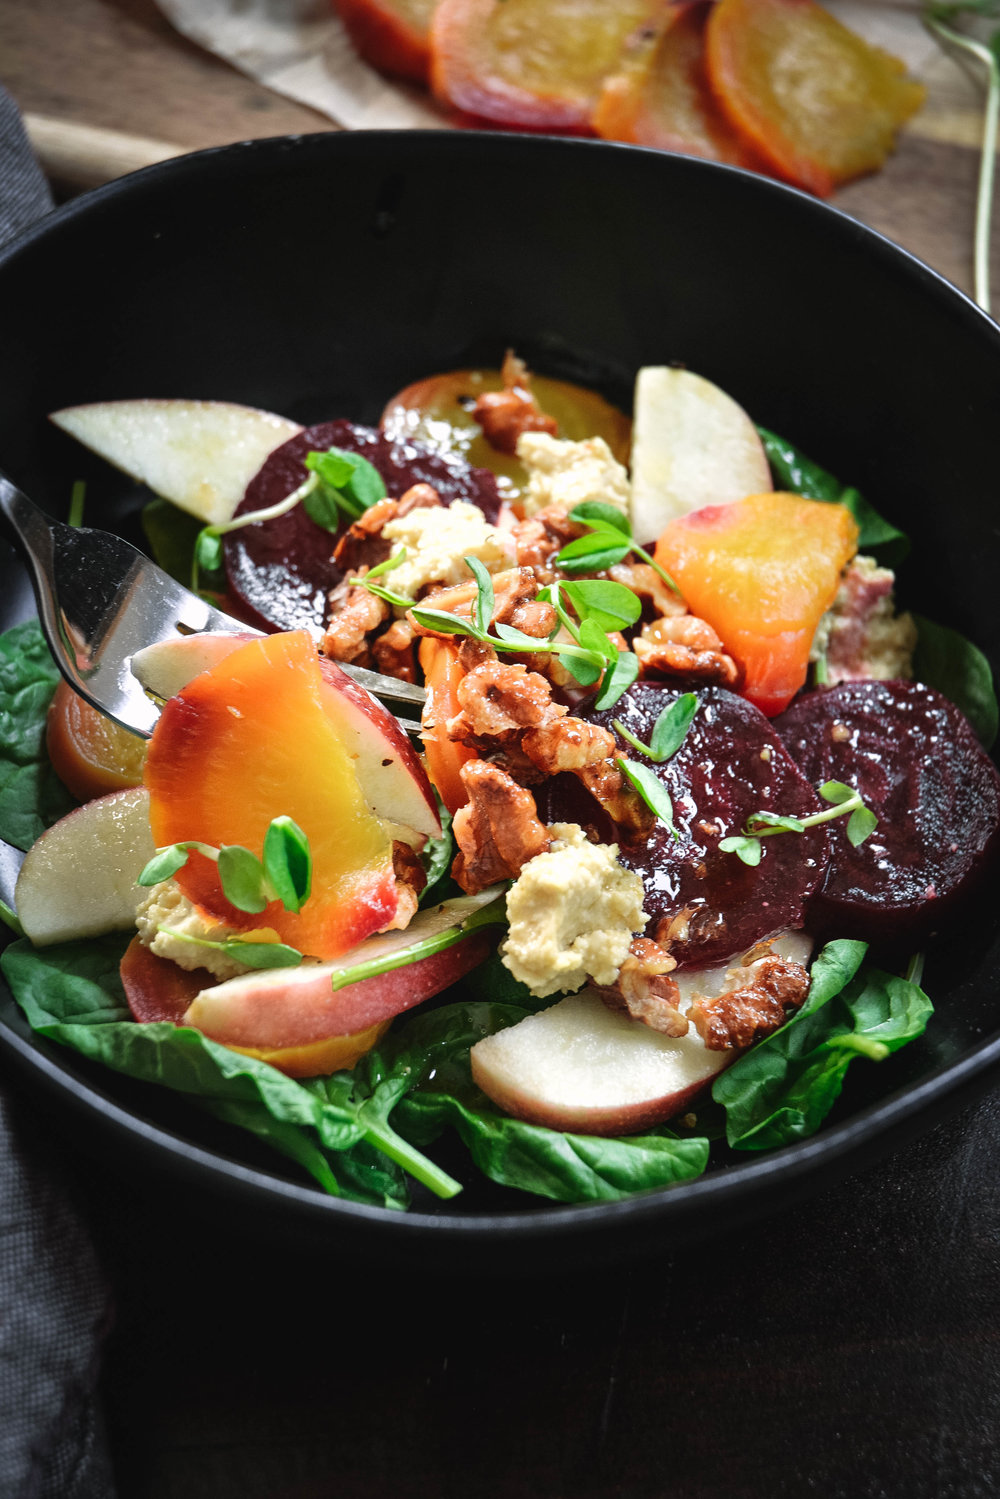 roasted beet salad with apple and candied walnuts